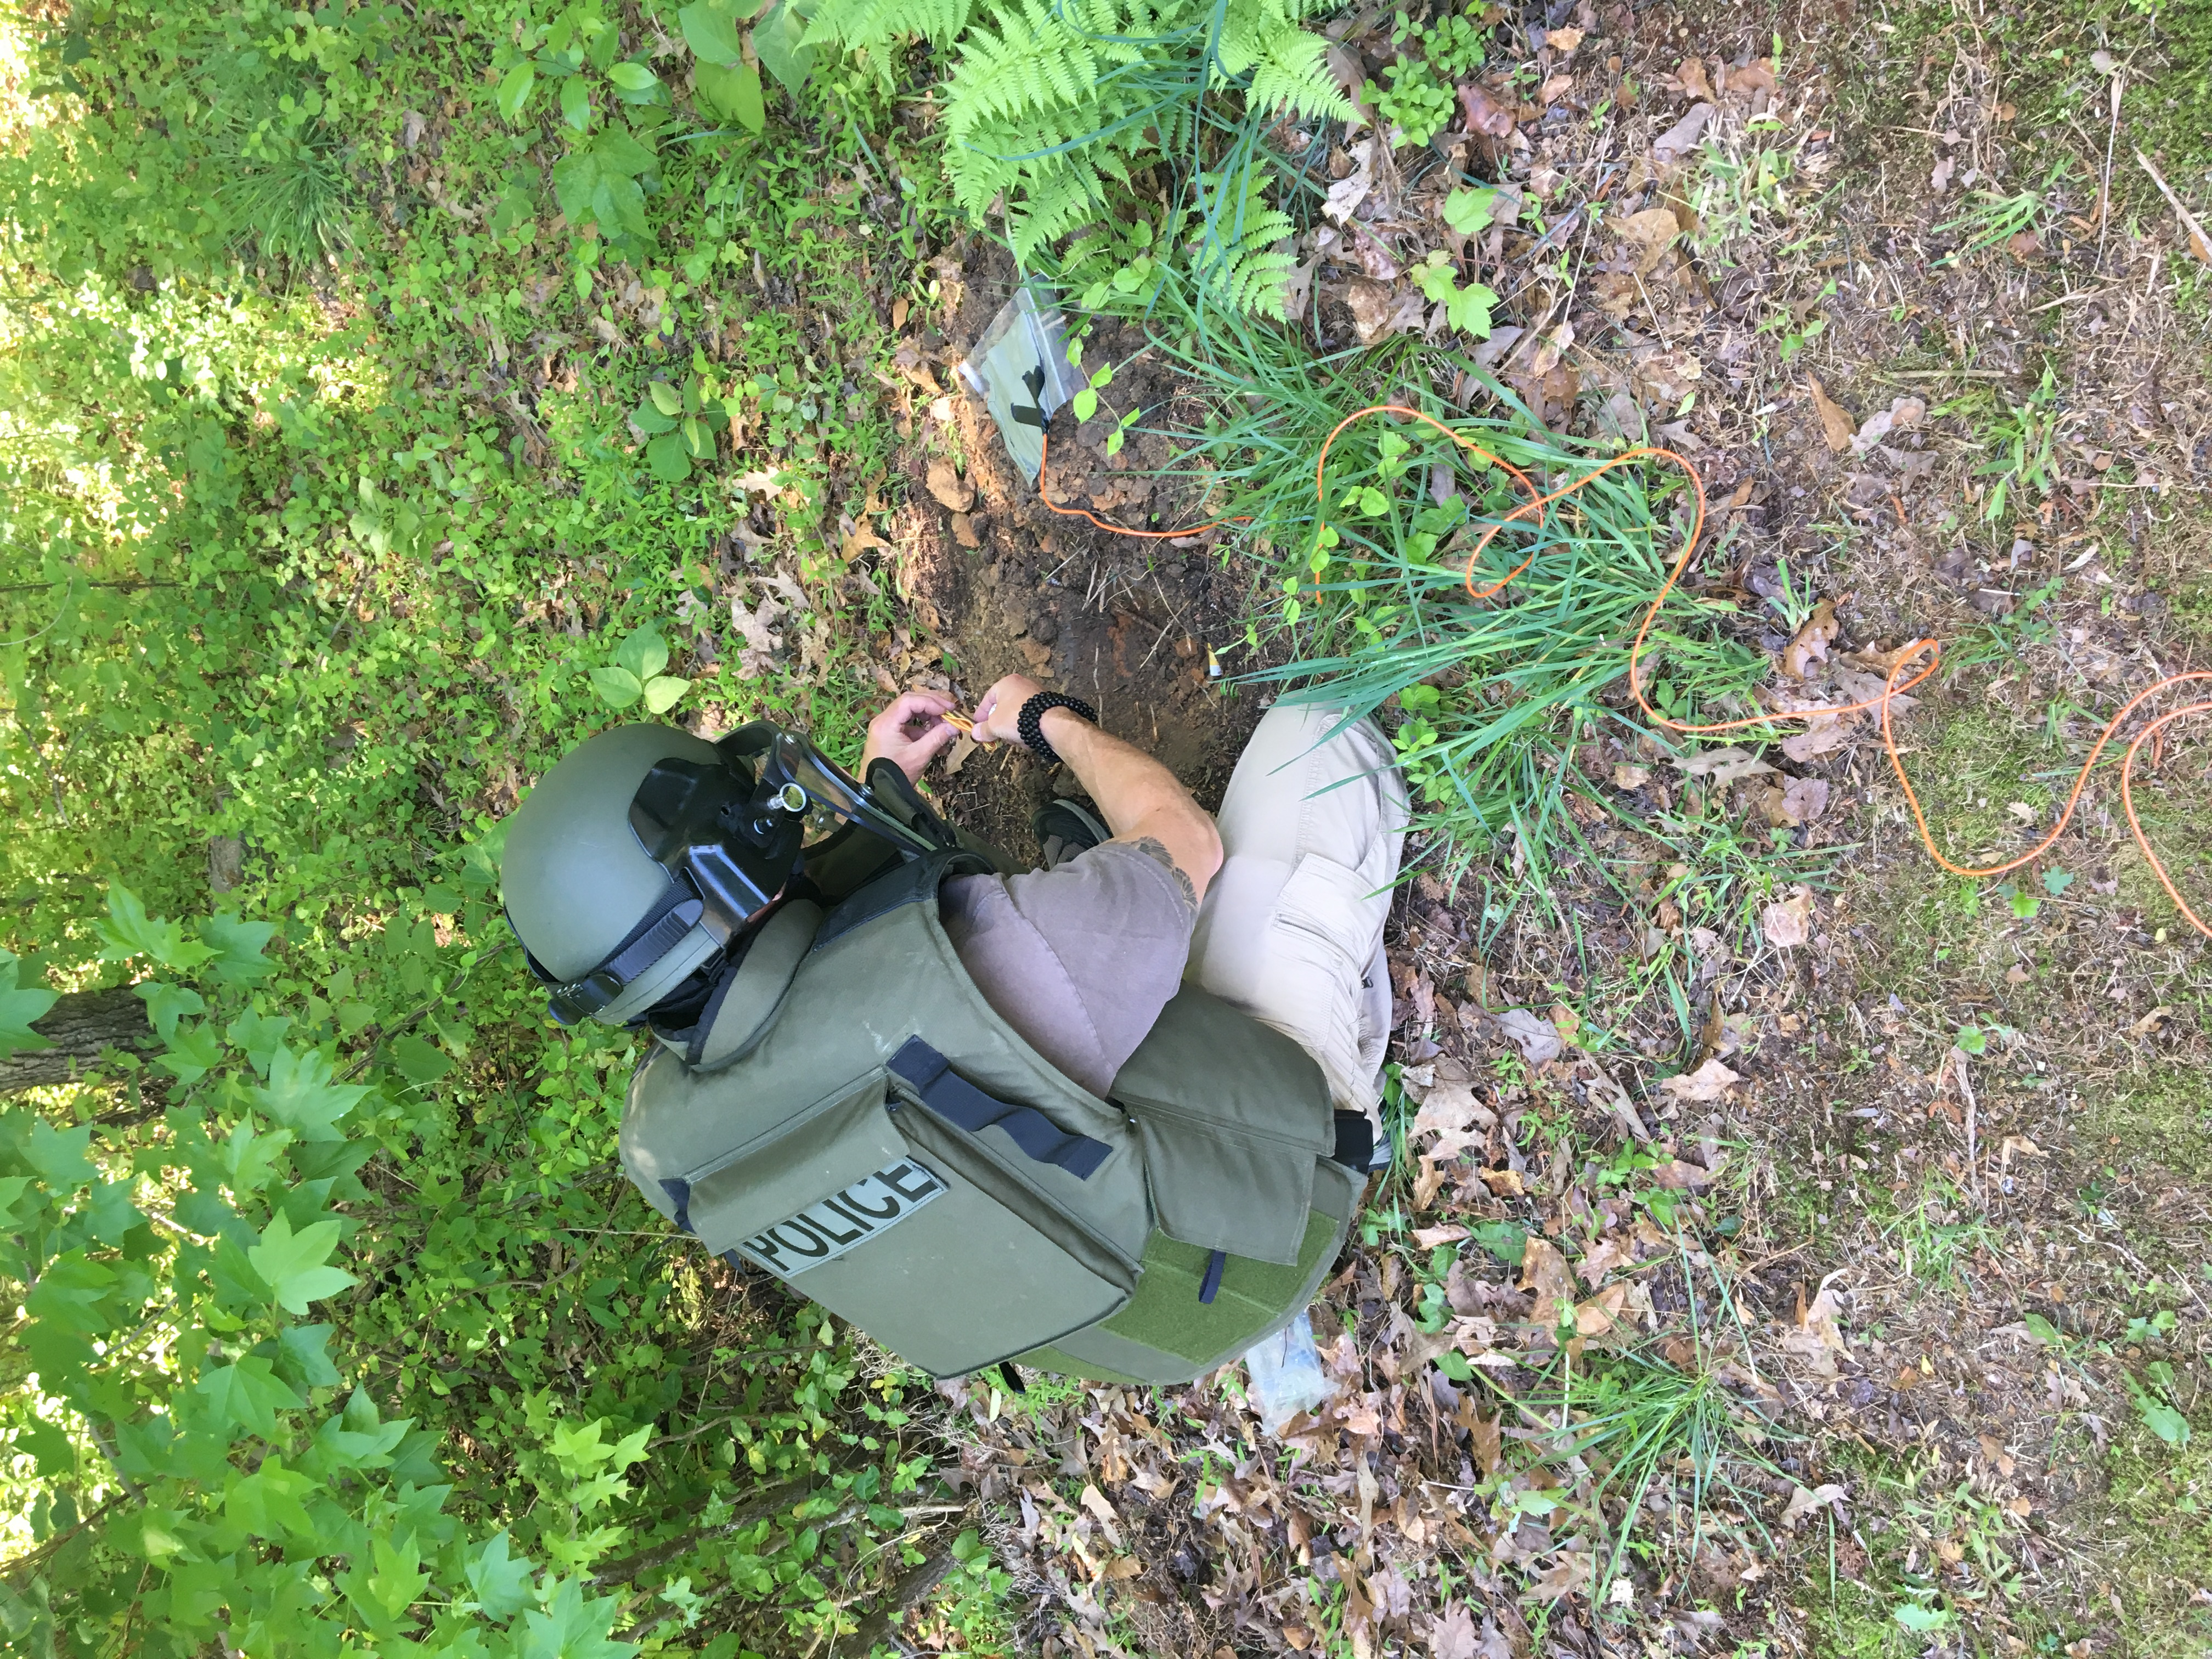 <div class='meta'><div class='origin-logo' data-origin='WTVD'></div><span class='caption-text' data-credit='SBI'>A Bomb Technician prepares to dispose of some blasting caps located in a house in Lee County earlier in 2018. This was a non-criminal case.</span></div>